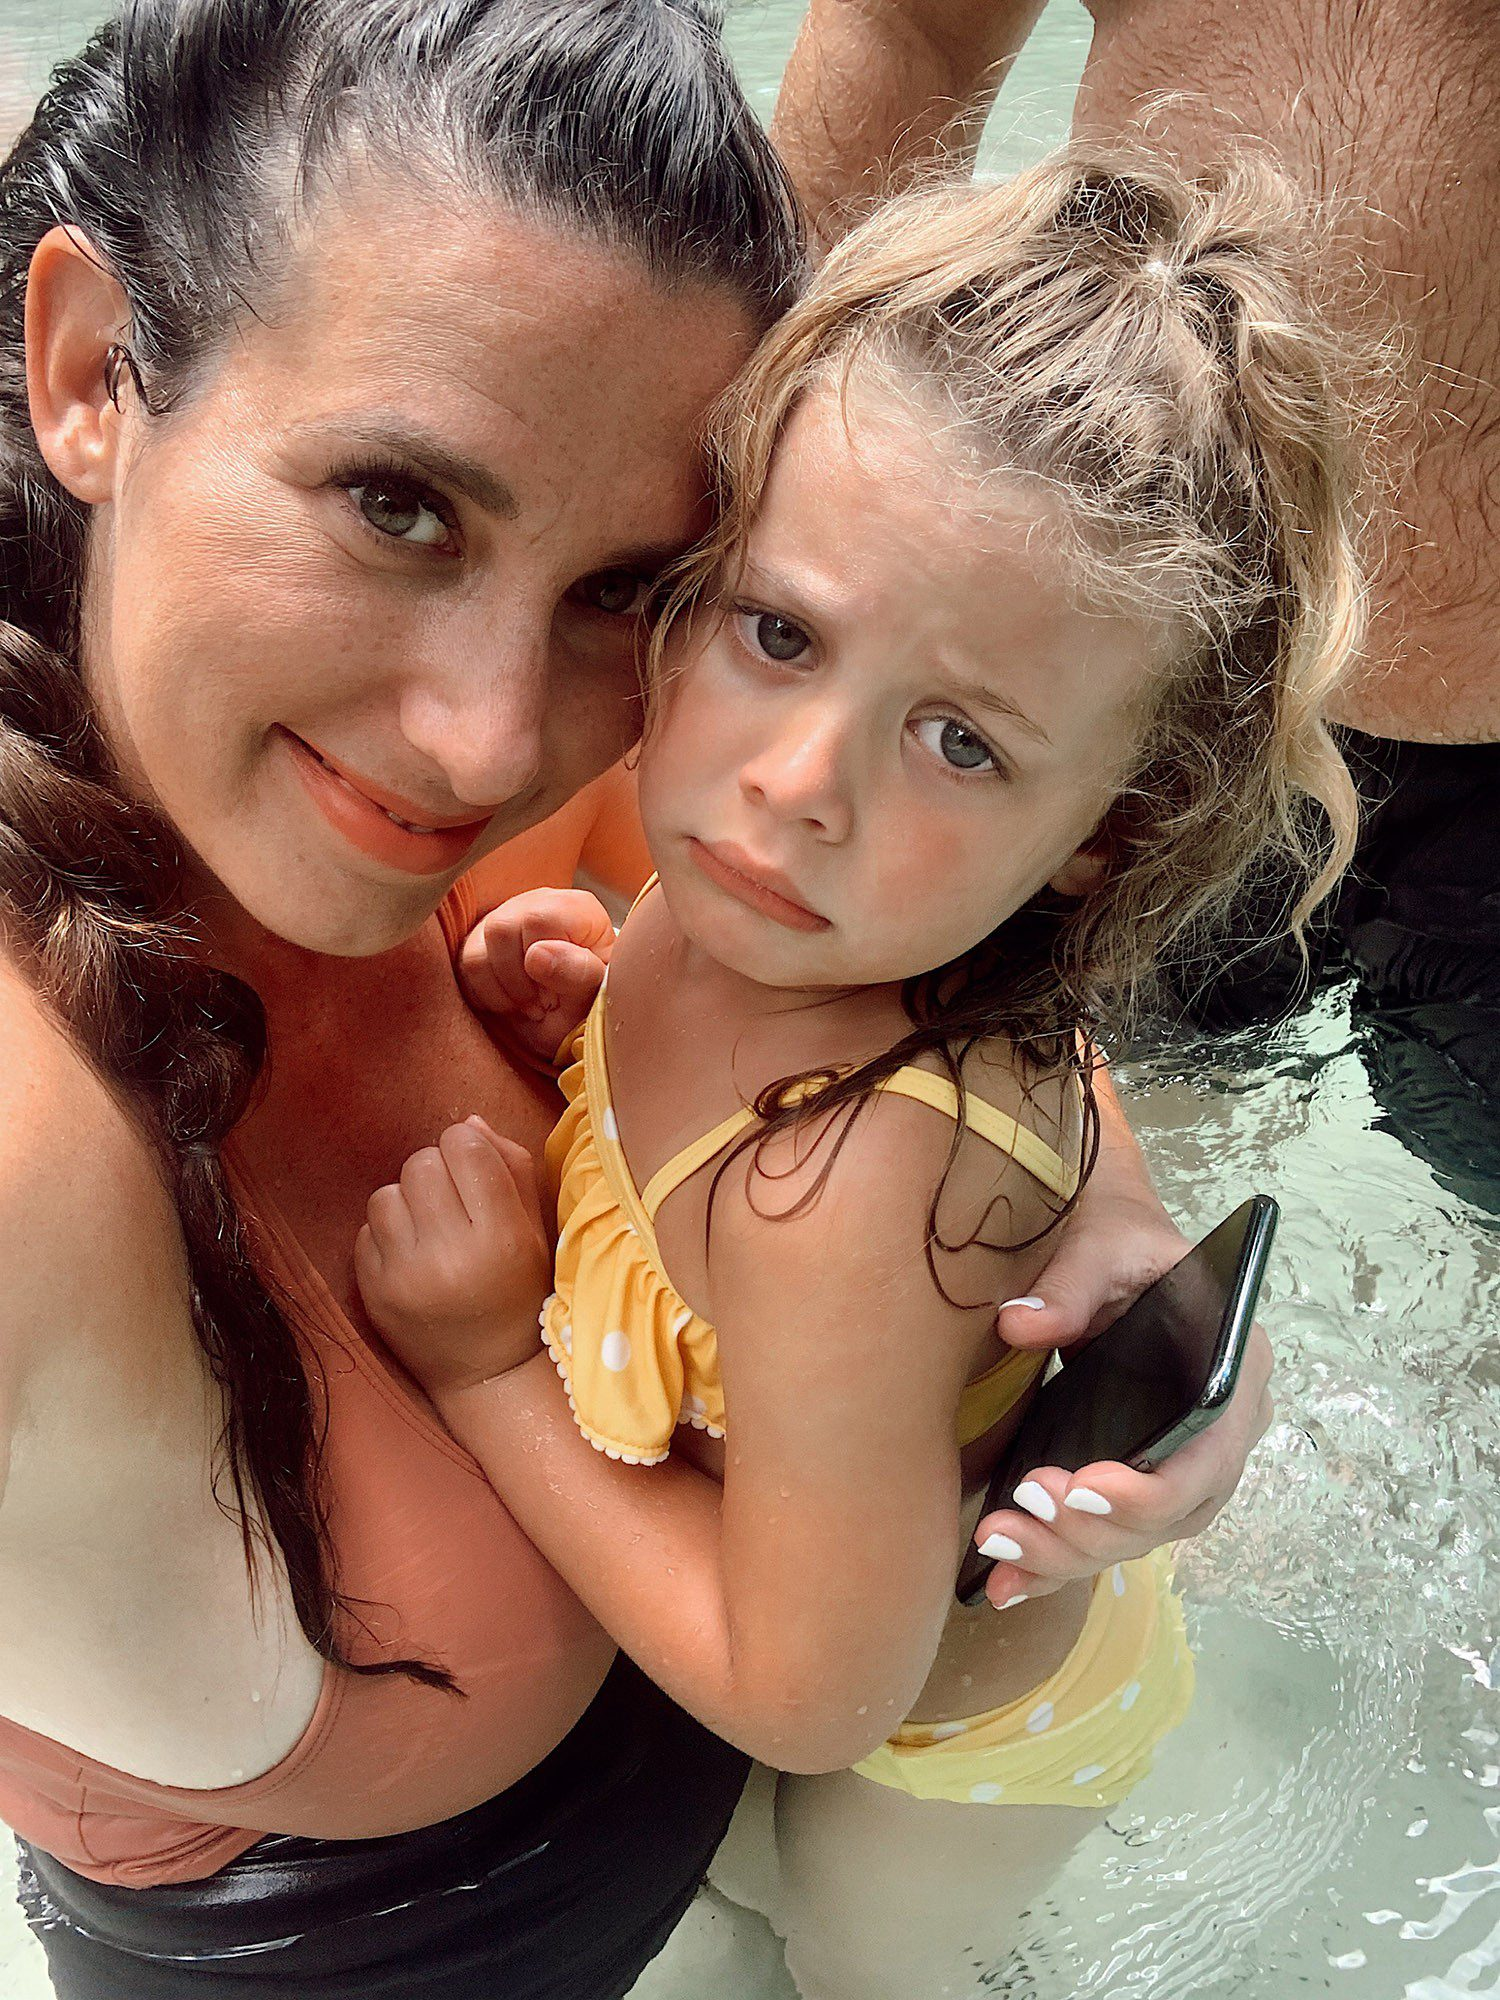 Tips for an Amazing Weeki Wachee Kayaking Florida Staycation. Visit Florida Travel ideas from top lifestyle blogger Tabitha Blue of Fresh Mommy Blog.   Weeki Wachee Kayaking by popular Florida blog, Fresh Mommy Blog: image of Tabitha Blue holding her young daughter as they stand in the water.